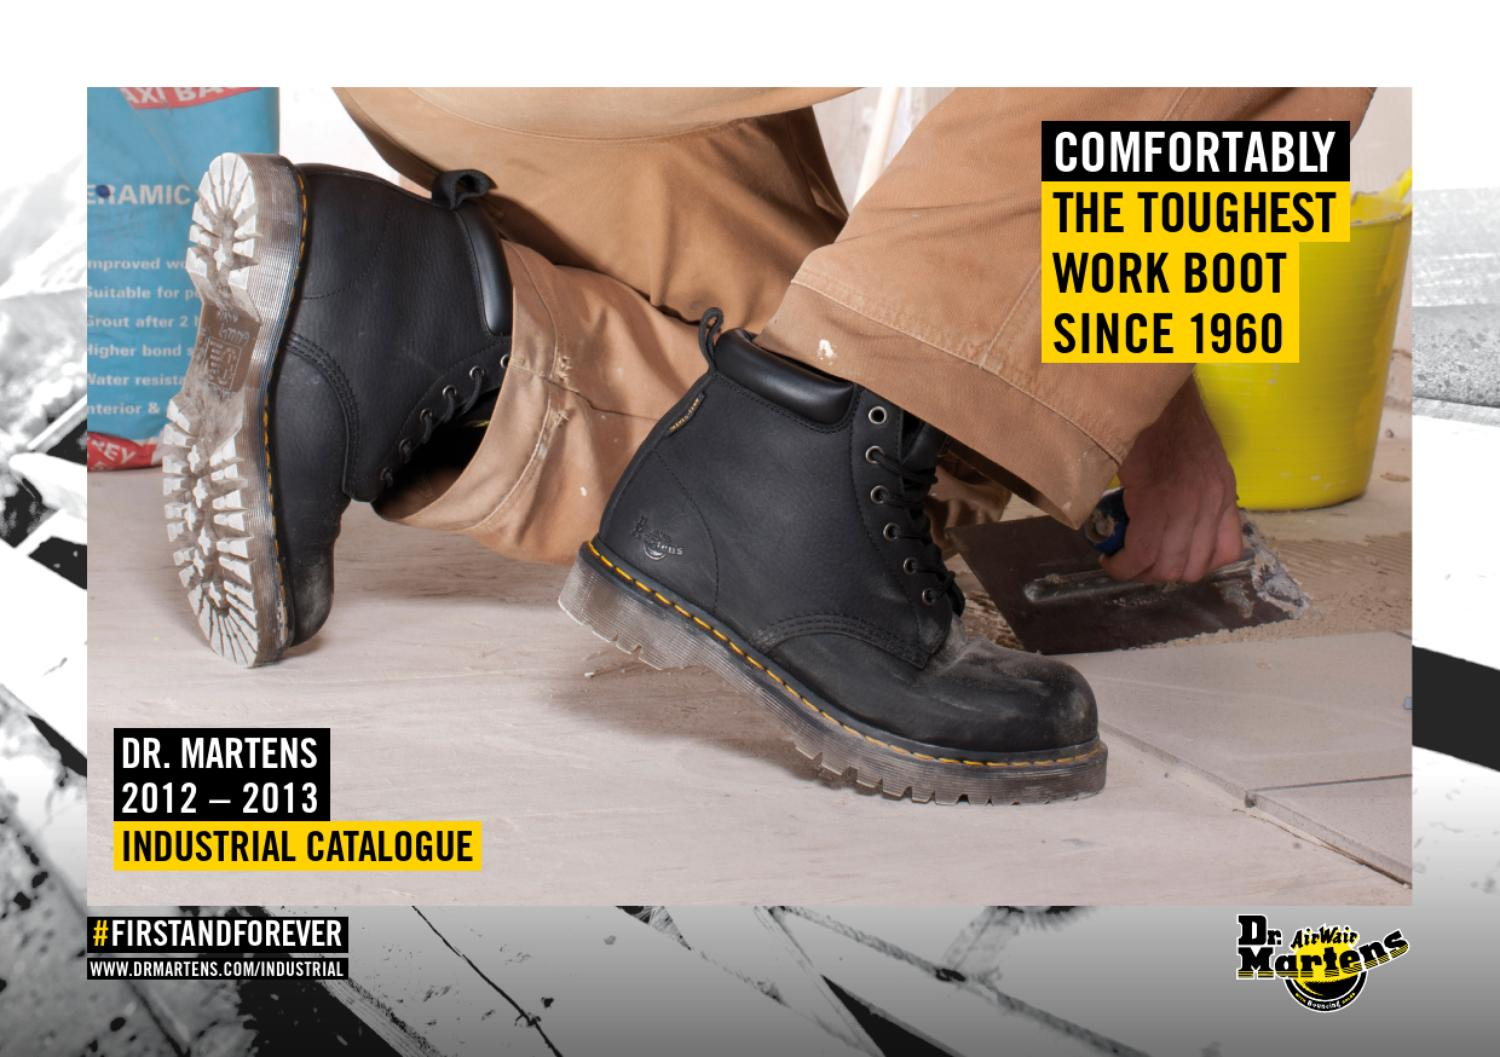 e91ff698f03 DR. MARTENS 2012 - 2013 INDUSTRIAL CATALOGUE by Dr. Martens Airwair ...